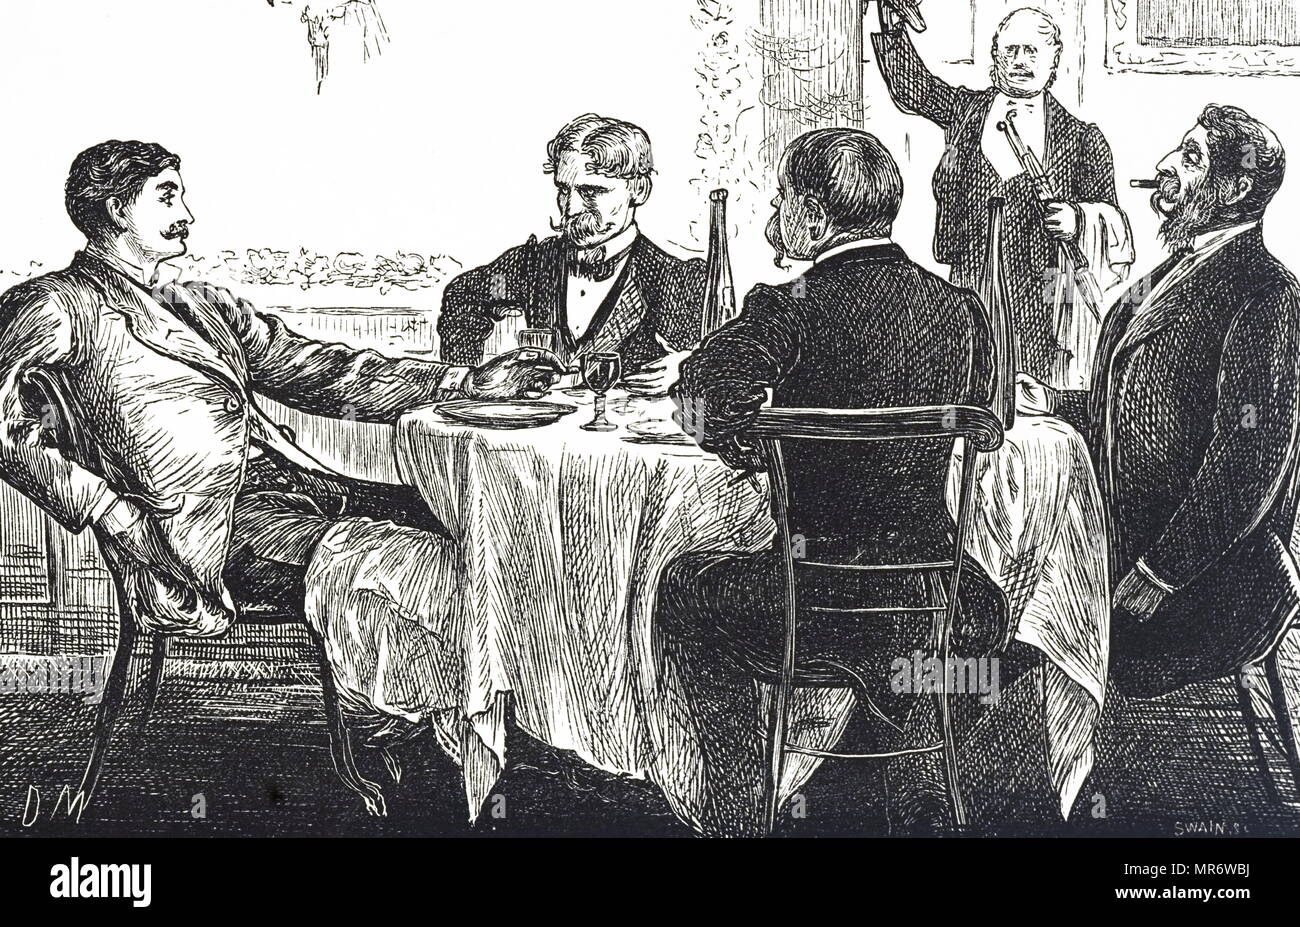 Cartoon titled 'Gentlemen taking Supper' depicting gentlemen eating in a dinning room. Illustrated by George du Maurier (1834-1896) a Franco-British cartoonist and author. Dated 19th century - Stock Image